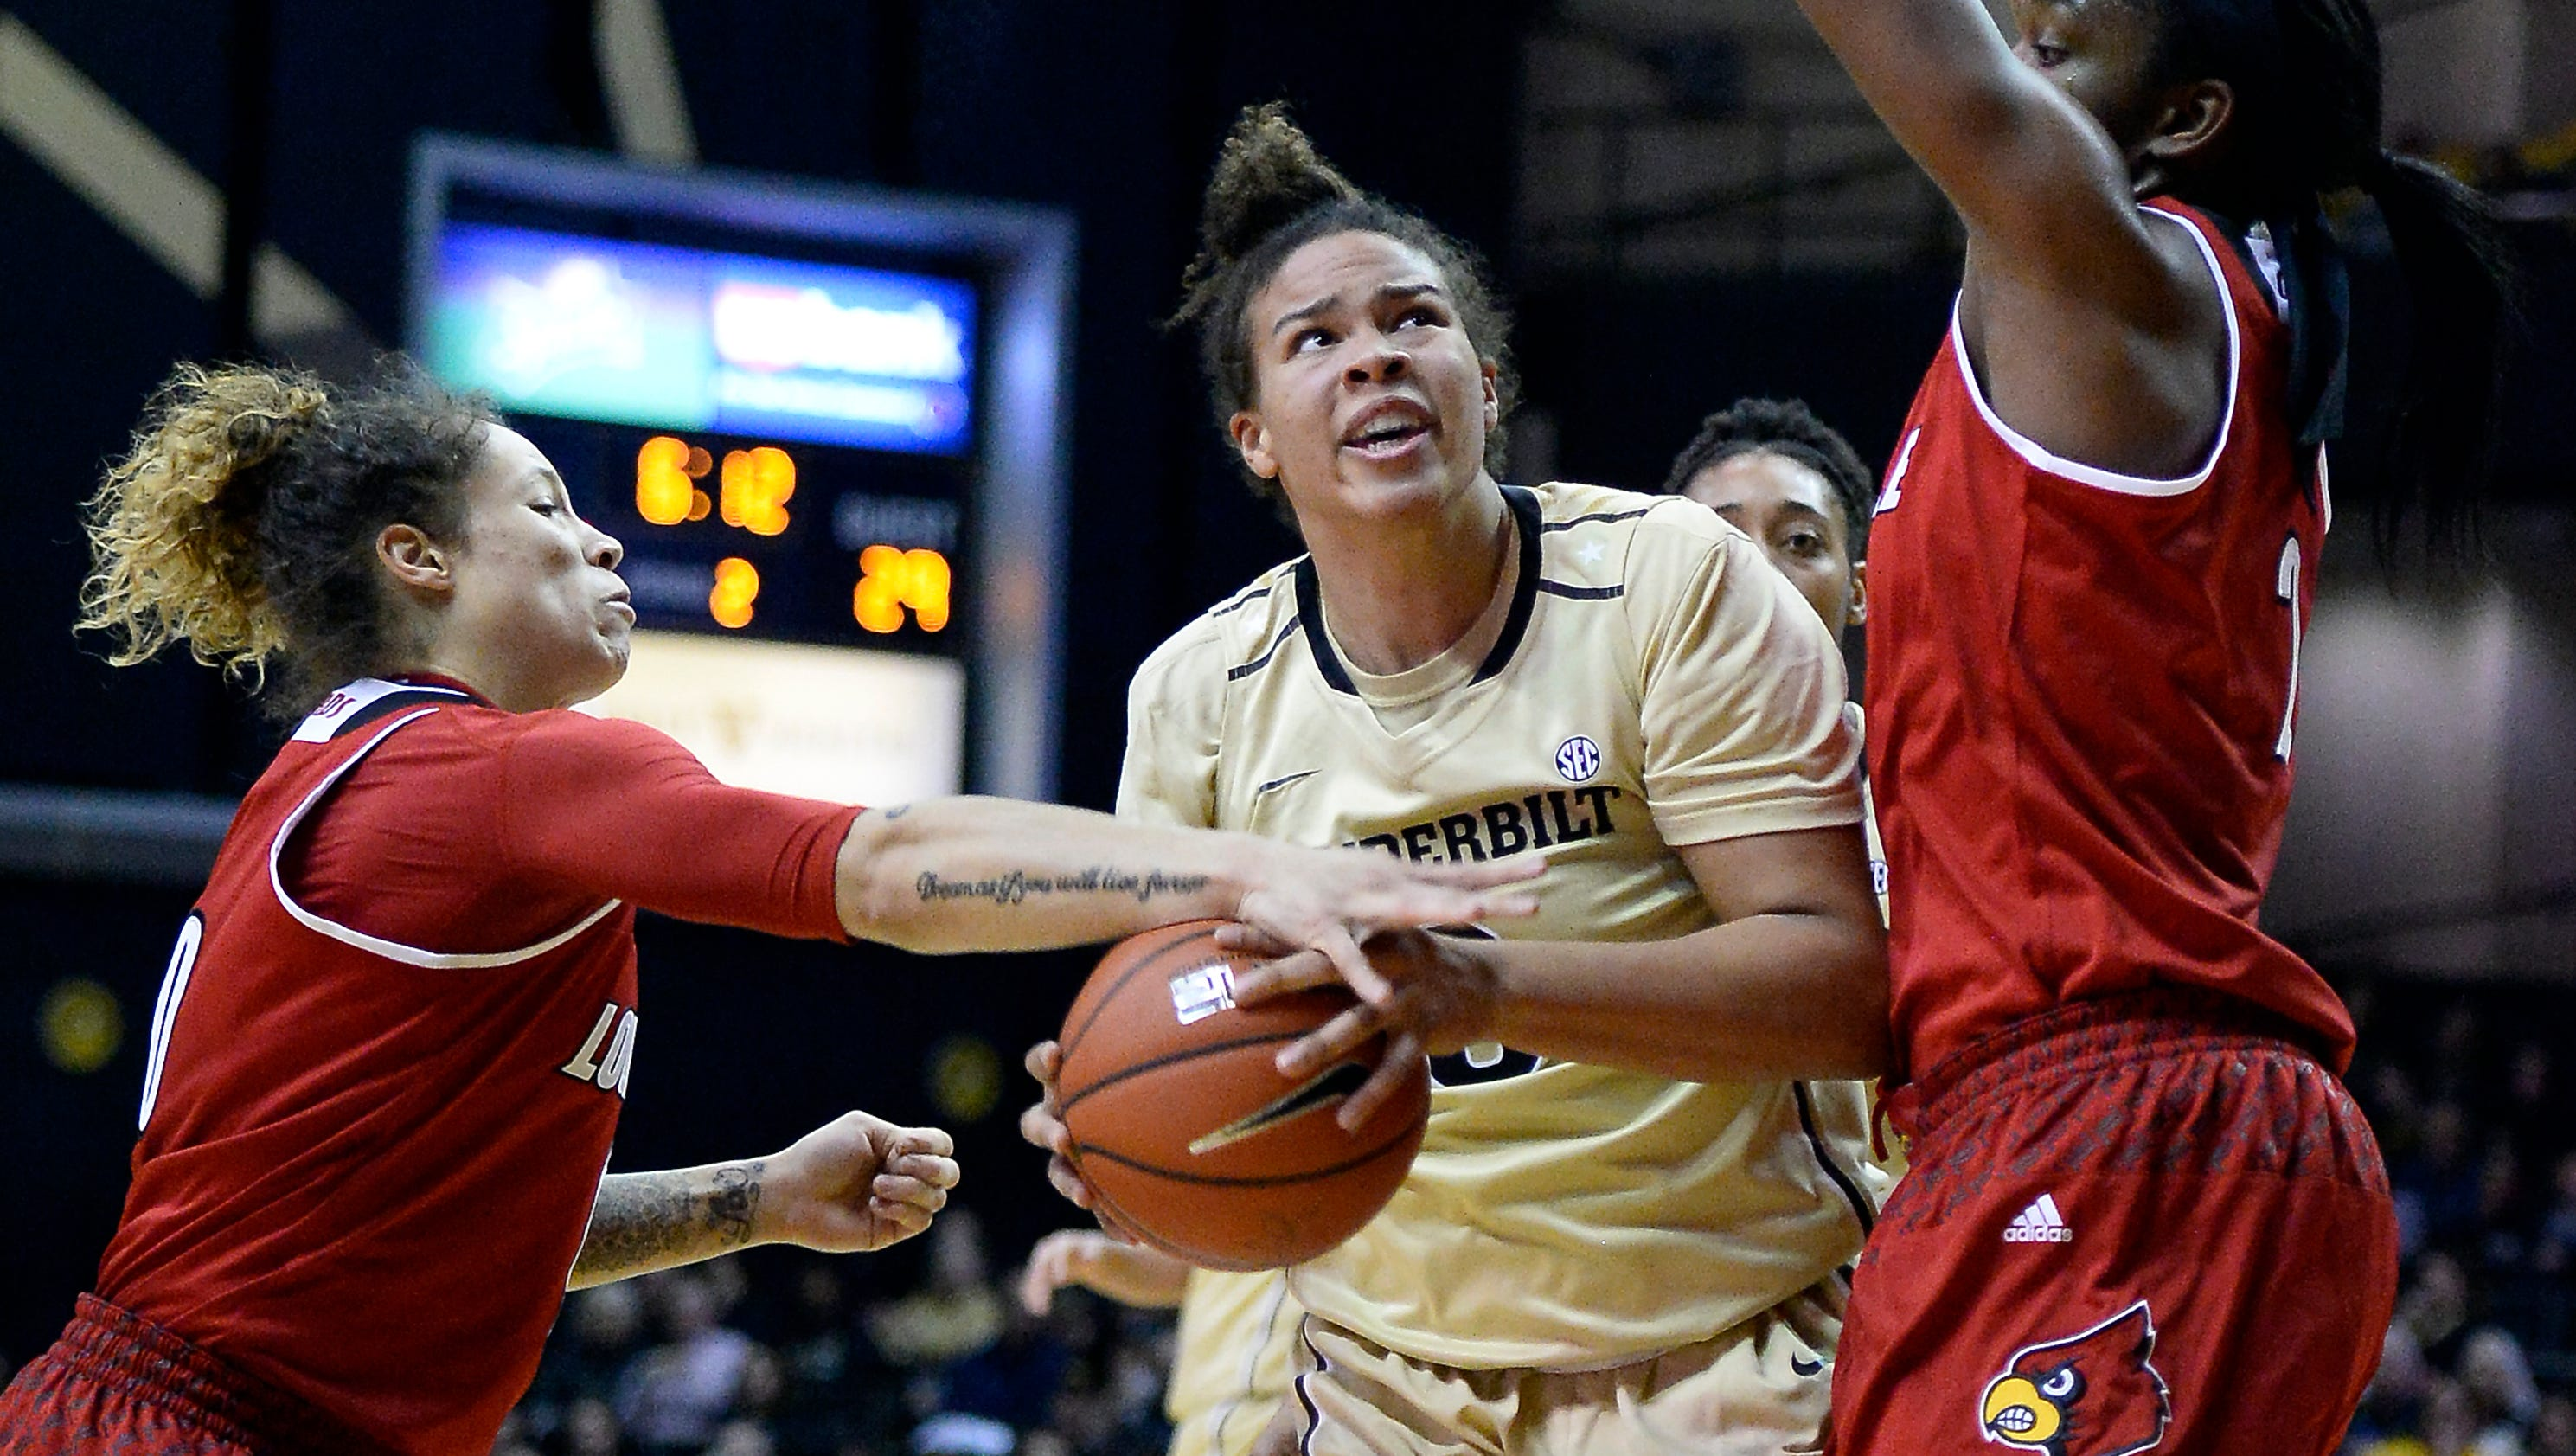 636179572045137519-nas-vandy-louisville-wbball-1222-003